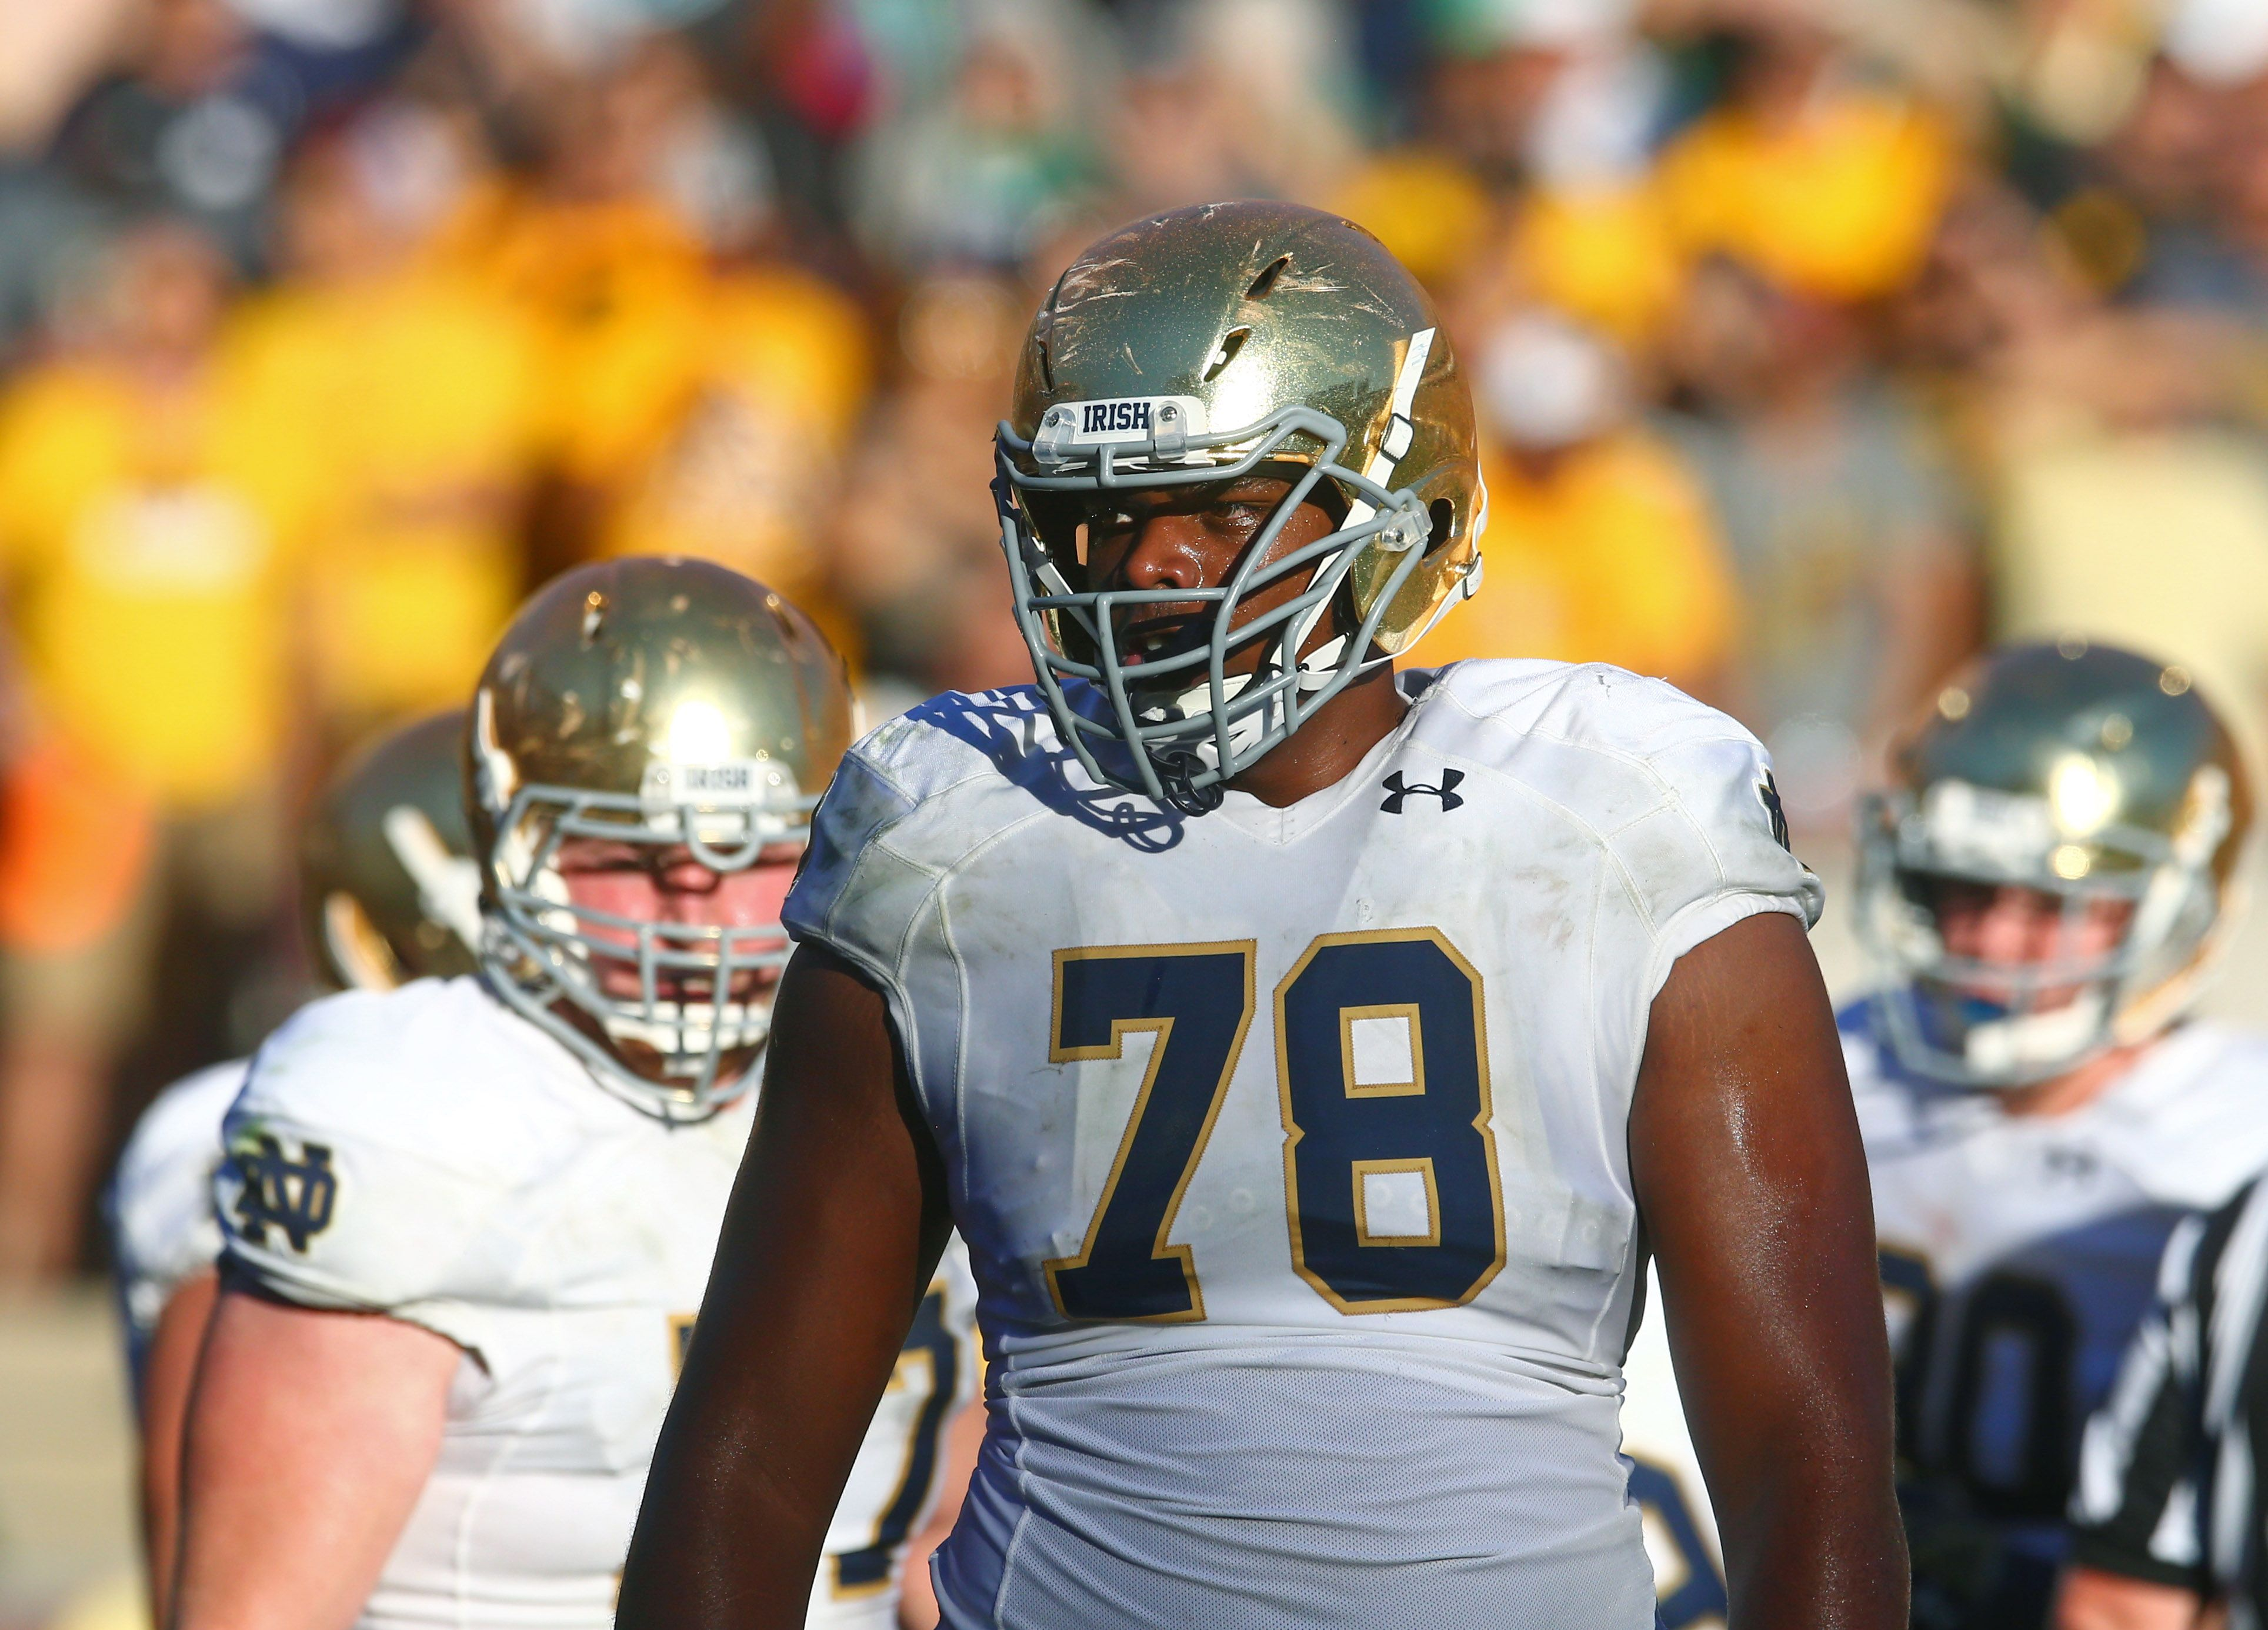 NFL Draft - Cowboys Draft: Offensive Tackle Prospects & Strategies